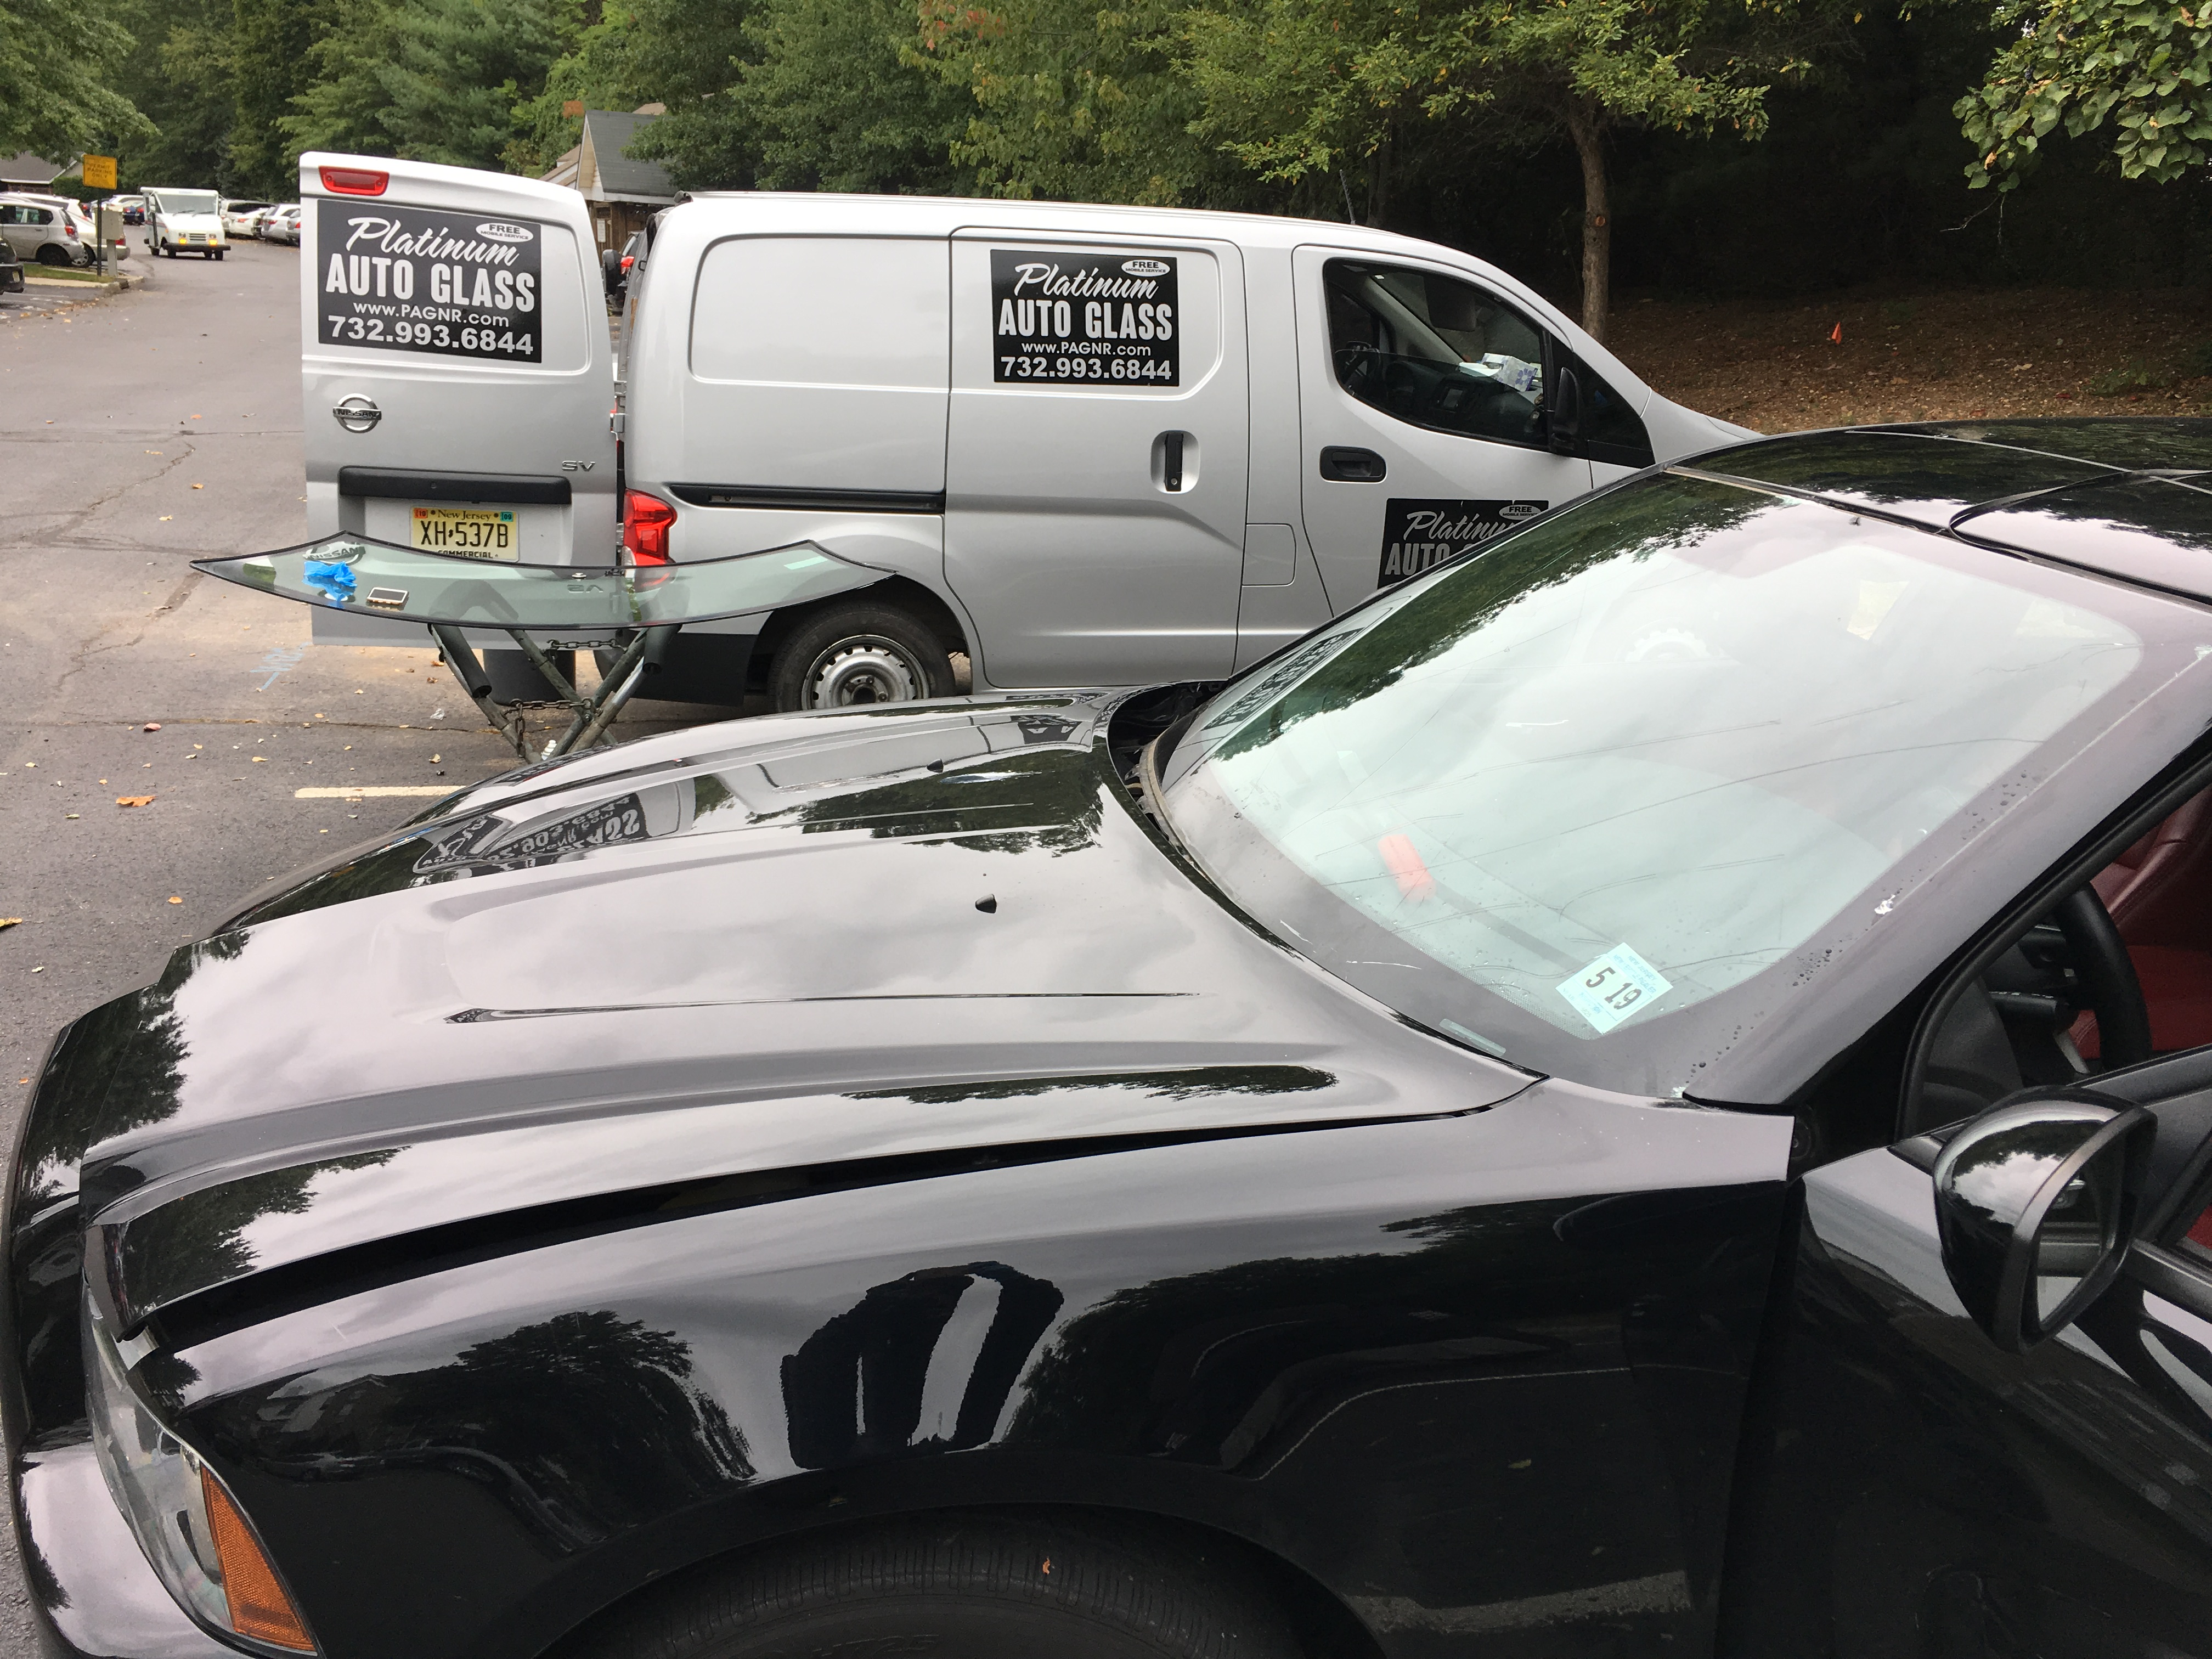 2015 Dodge Charge  automobile ready cut out  window replacement all done in New Jersey    by Platinum Auto Glass Repair  New Jersey @platinumautoglassnj.com